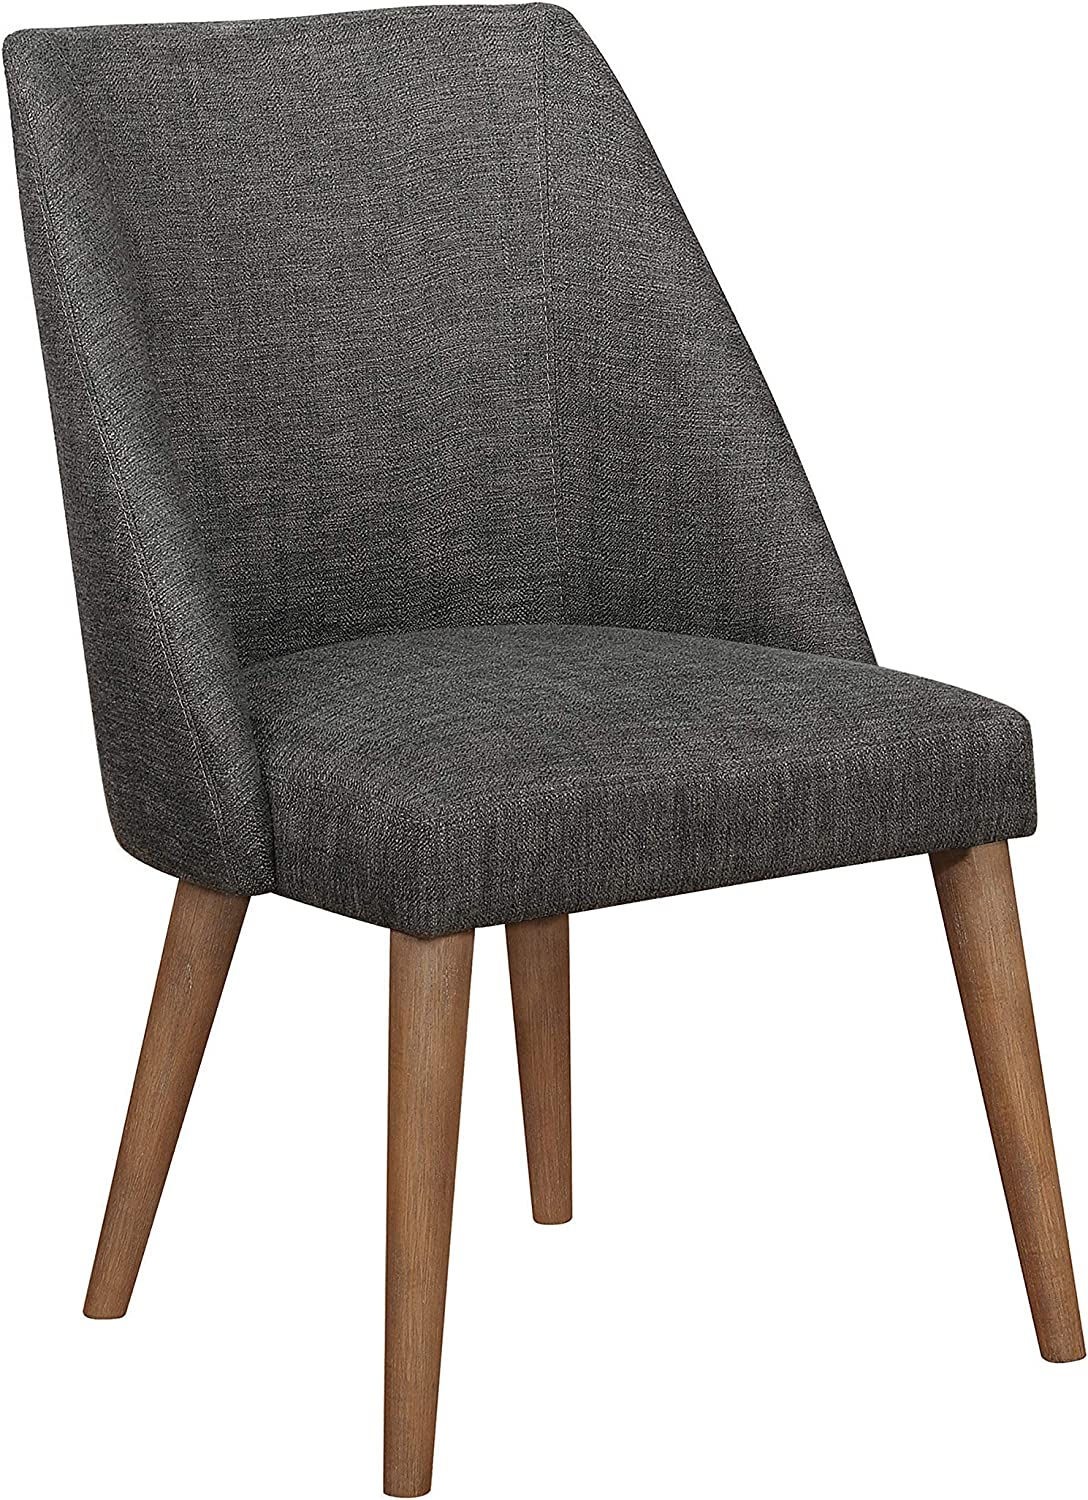 Coaster Home Furnishings Beverly Upholstered Grey and Dark Cocoa (Set of 2) Side Chair